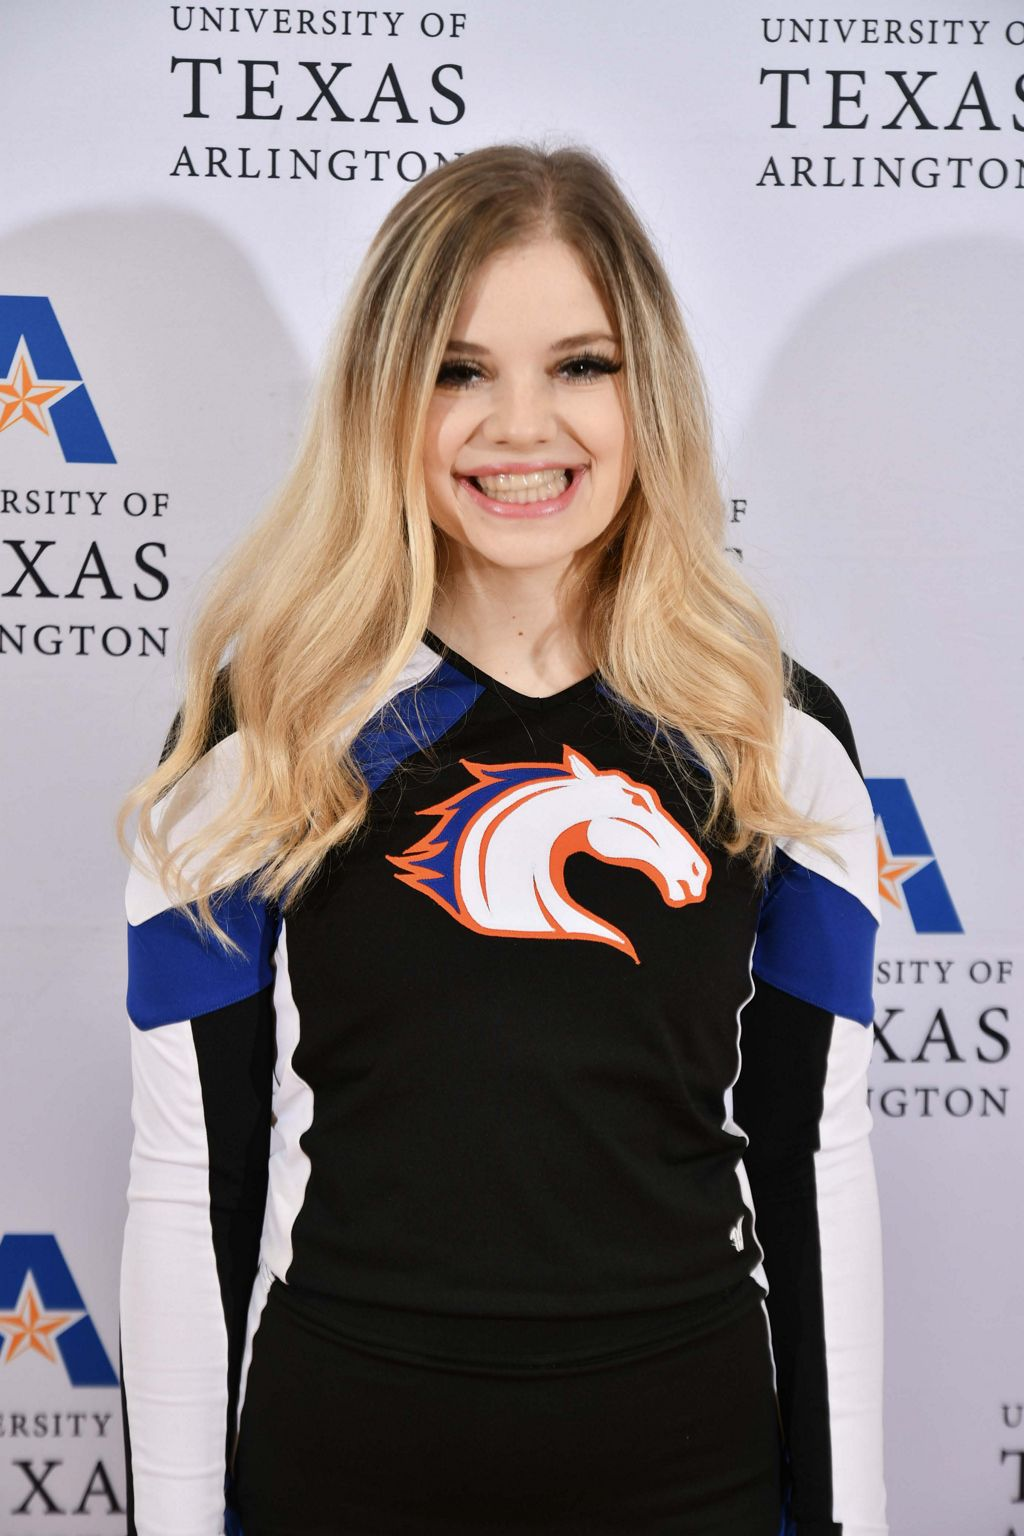 Cheerleader Kathryn Walling posing for a picture